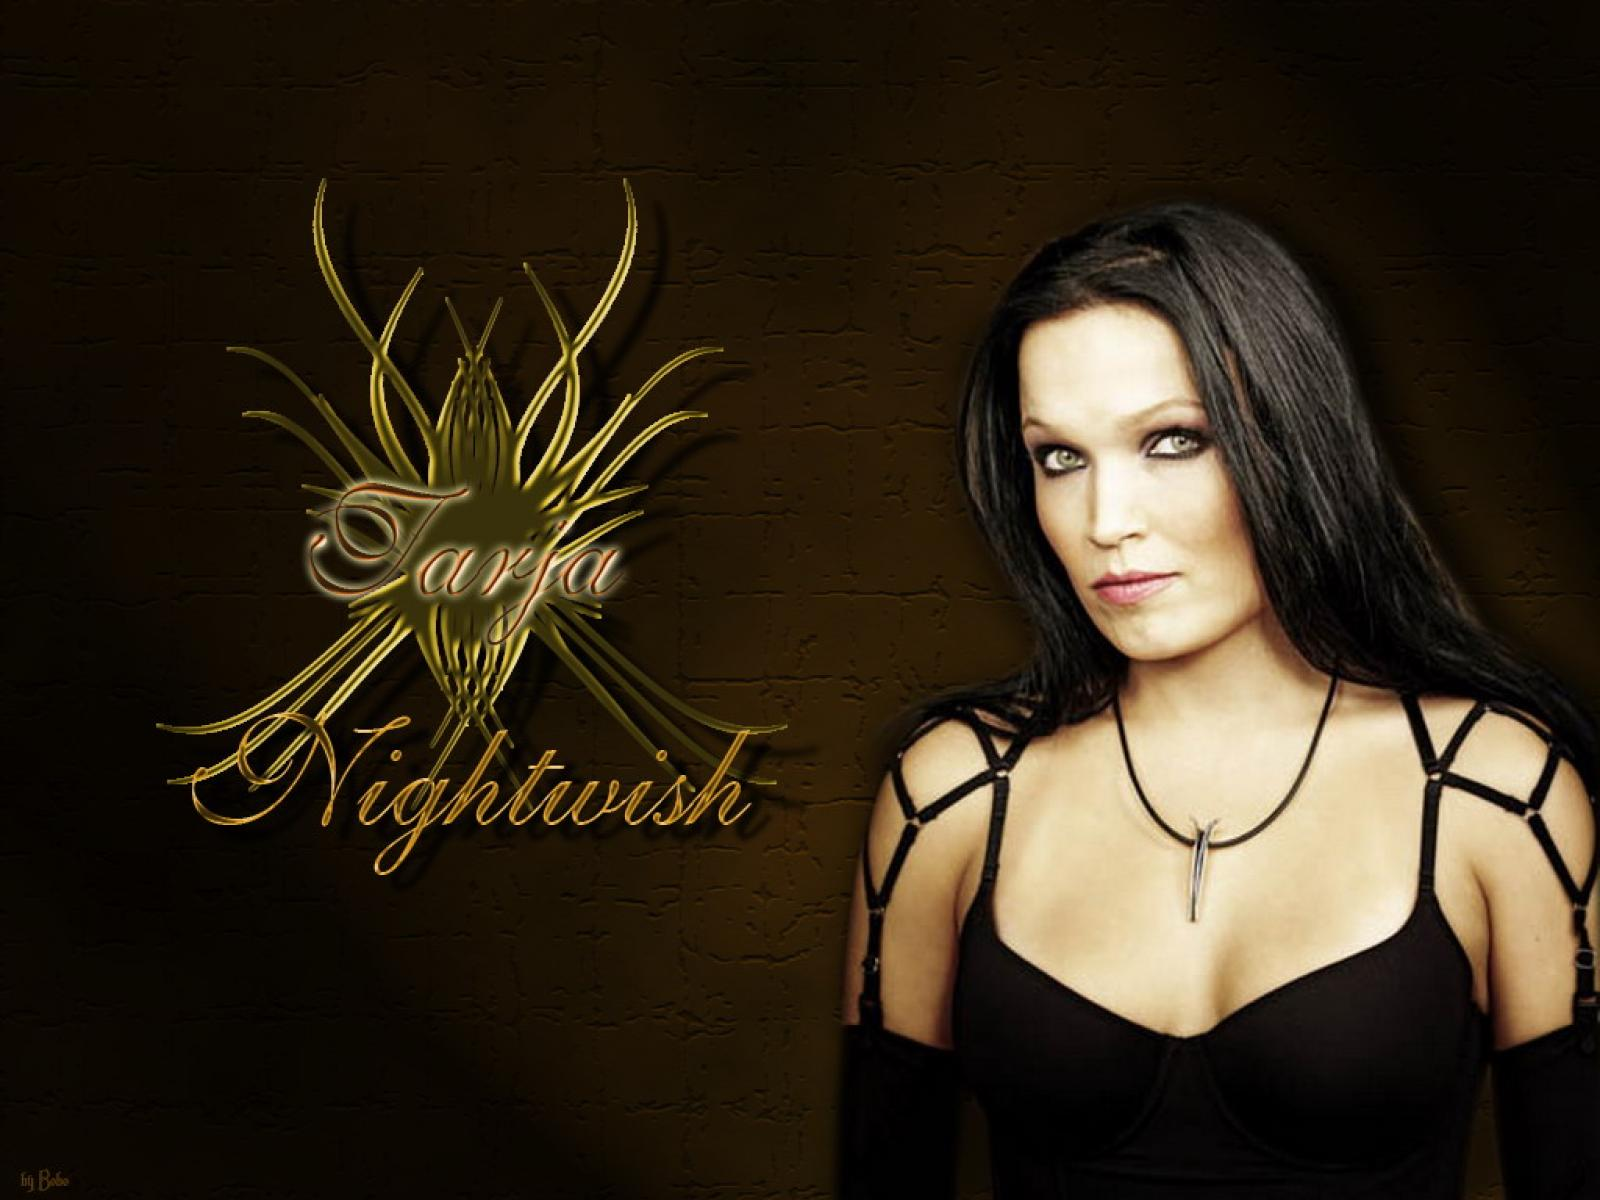 tarja turunen wallpaper - photo #9